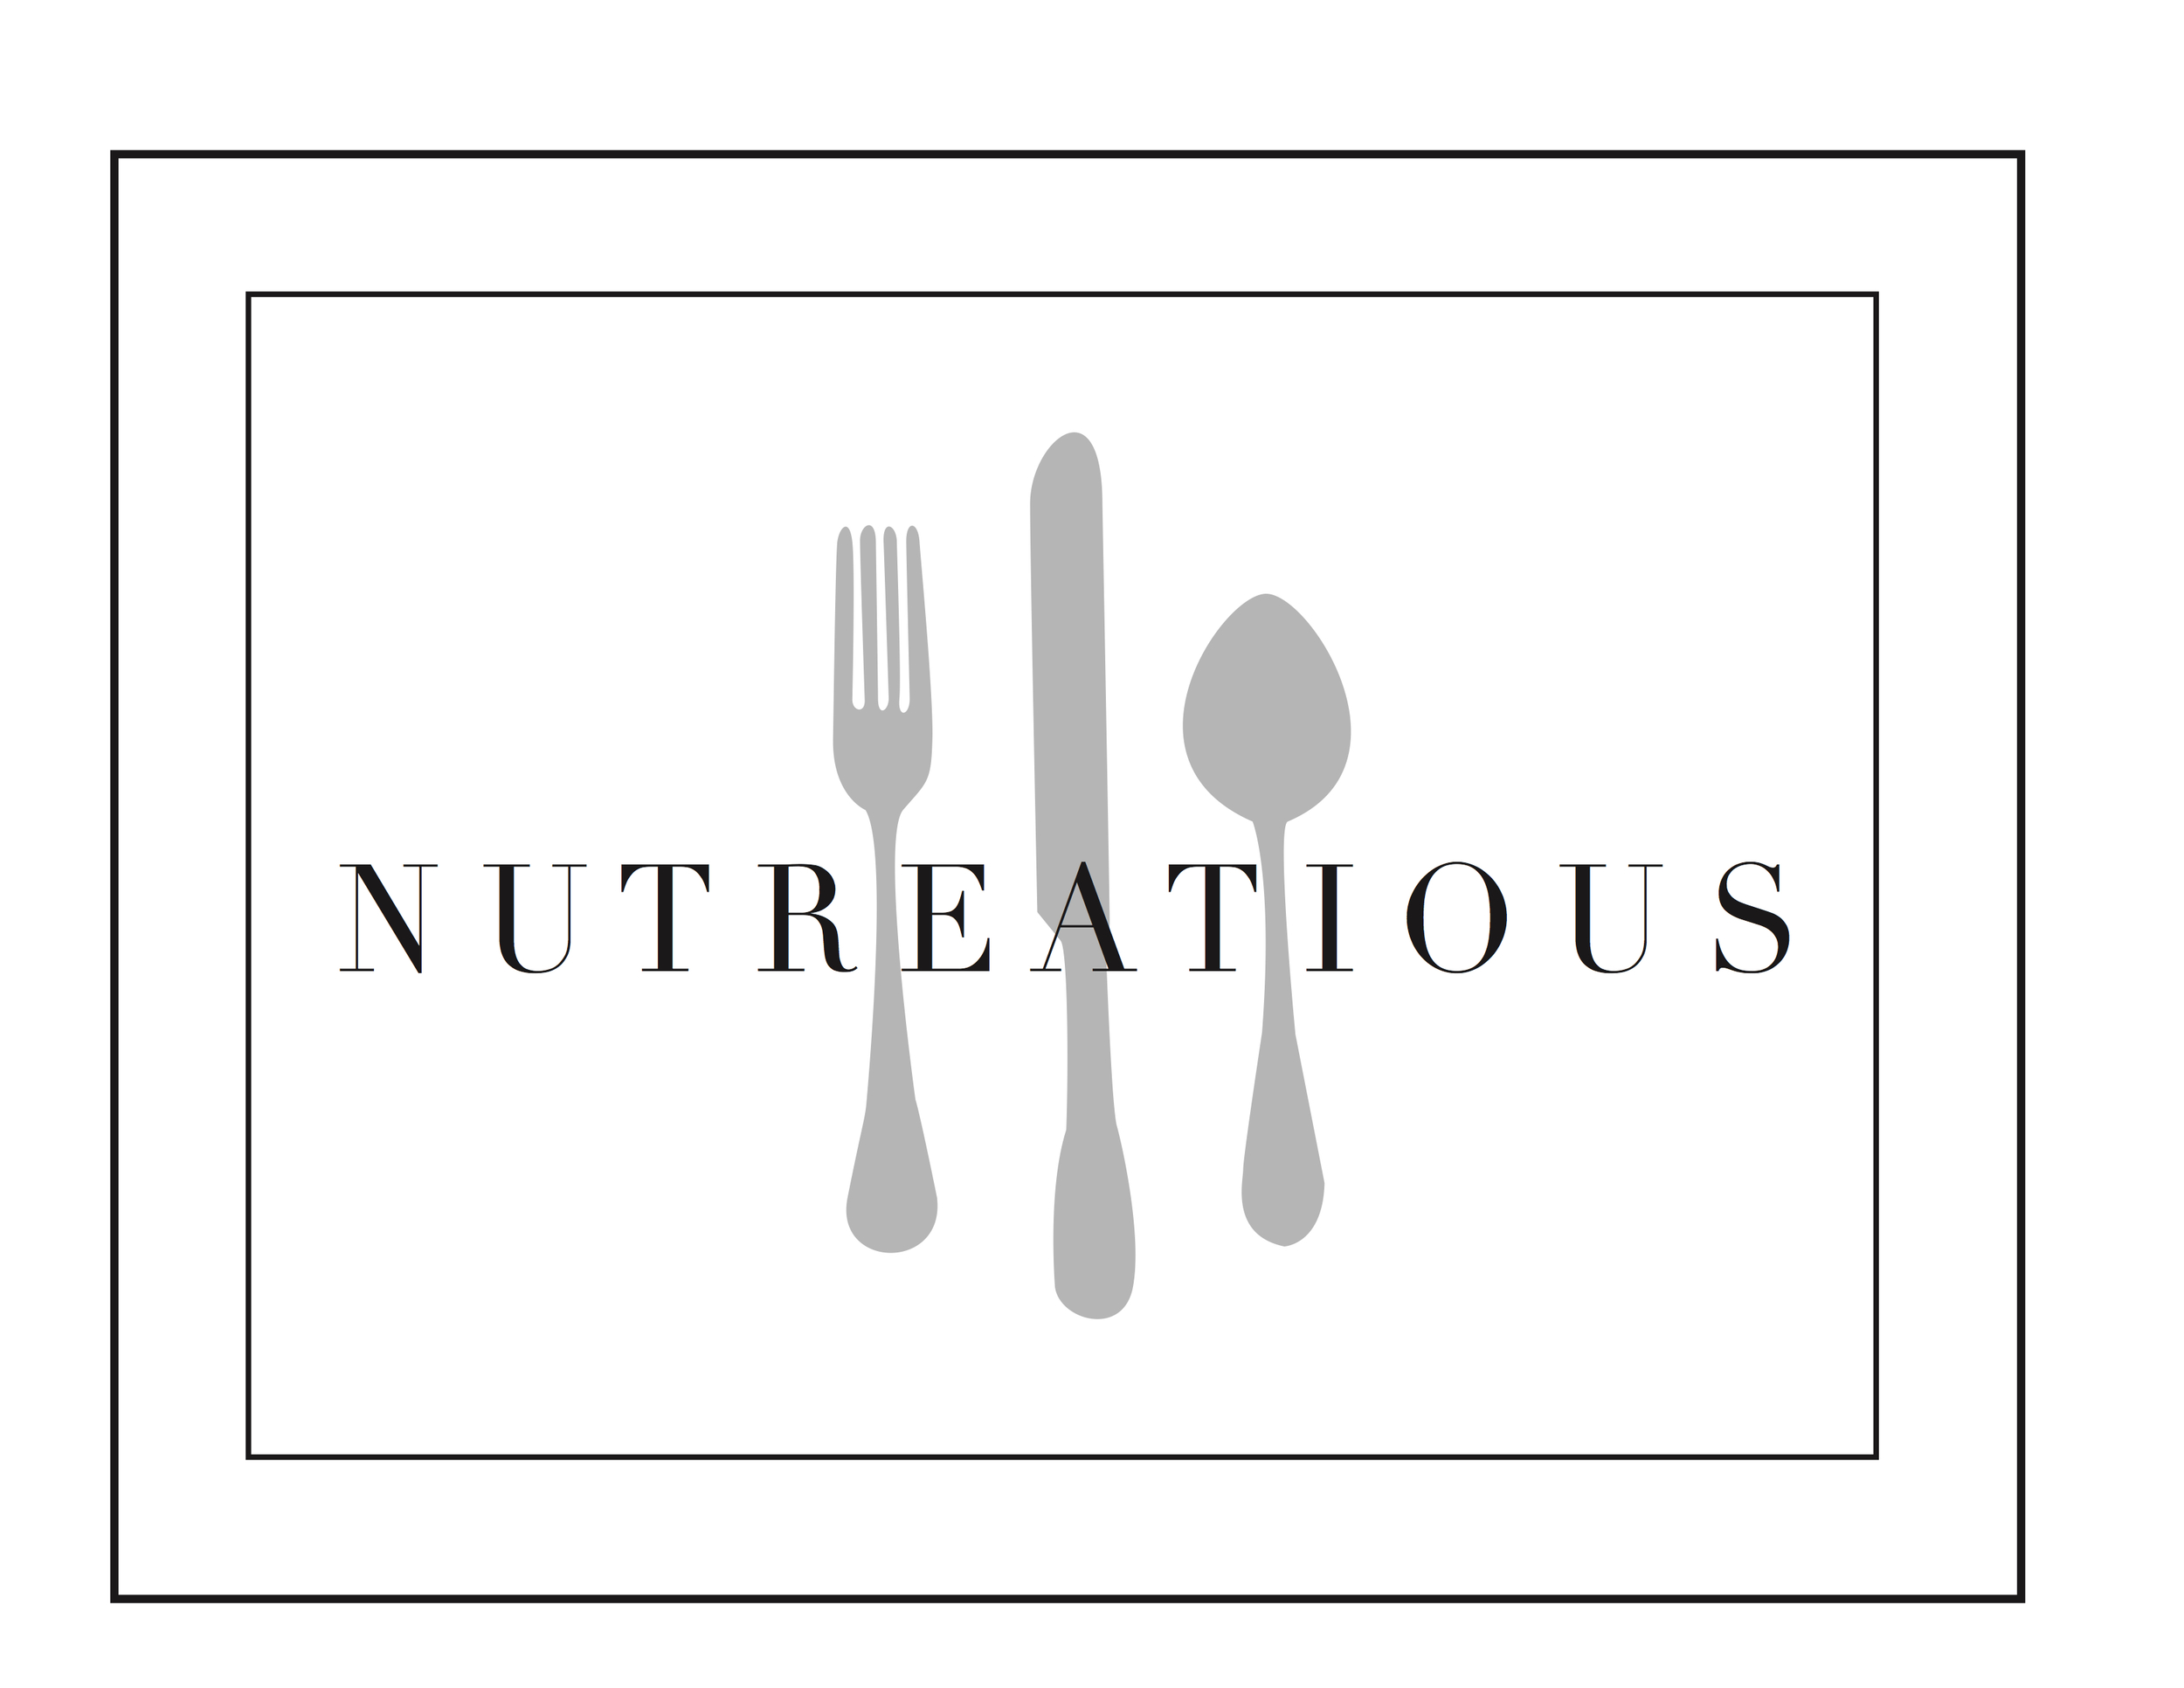 NutreatiousLogo.png